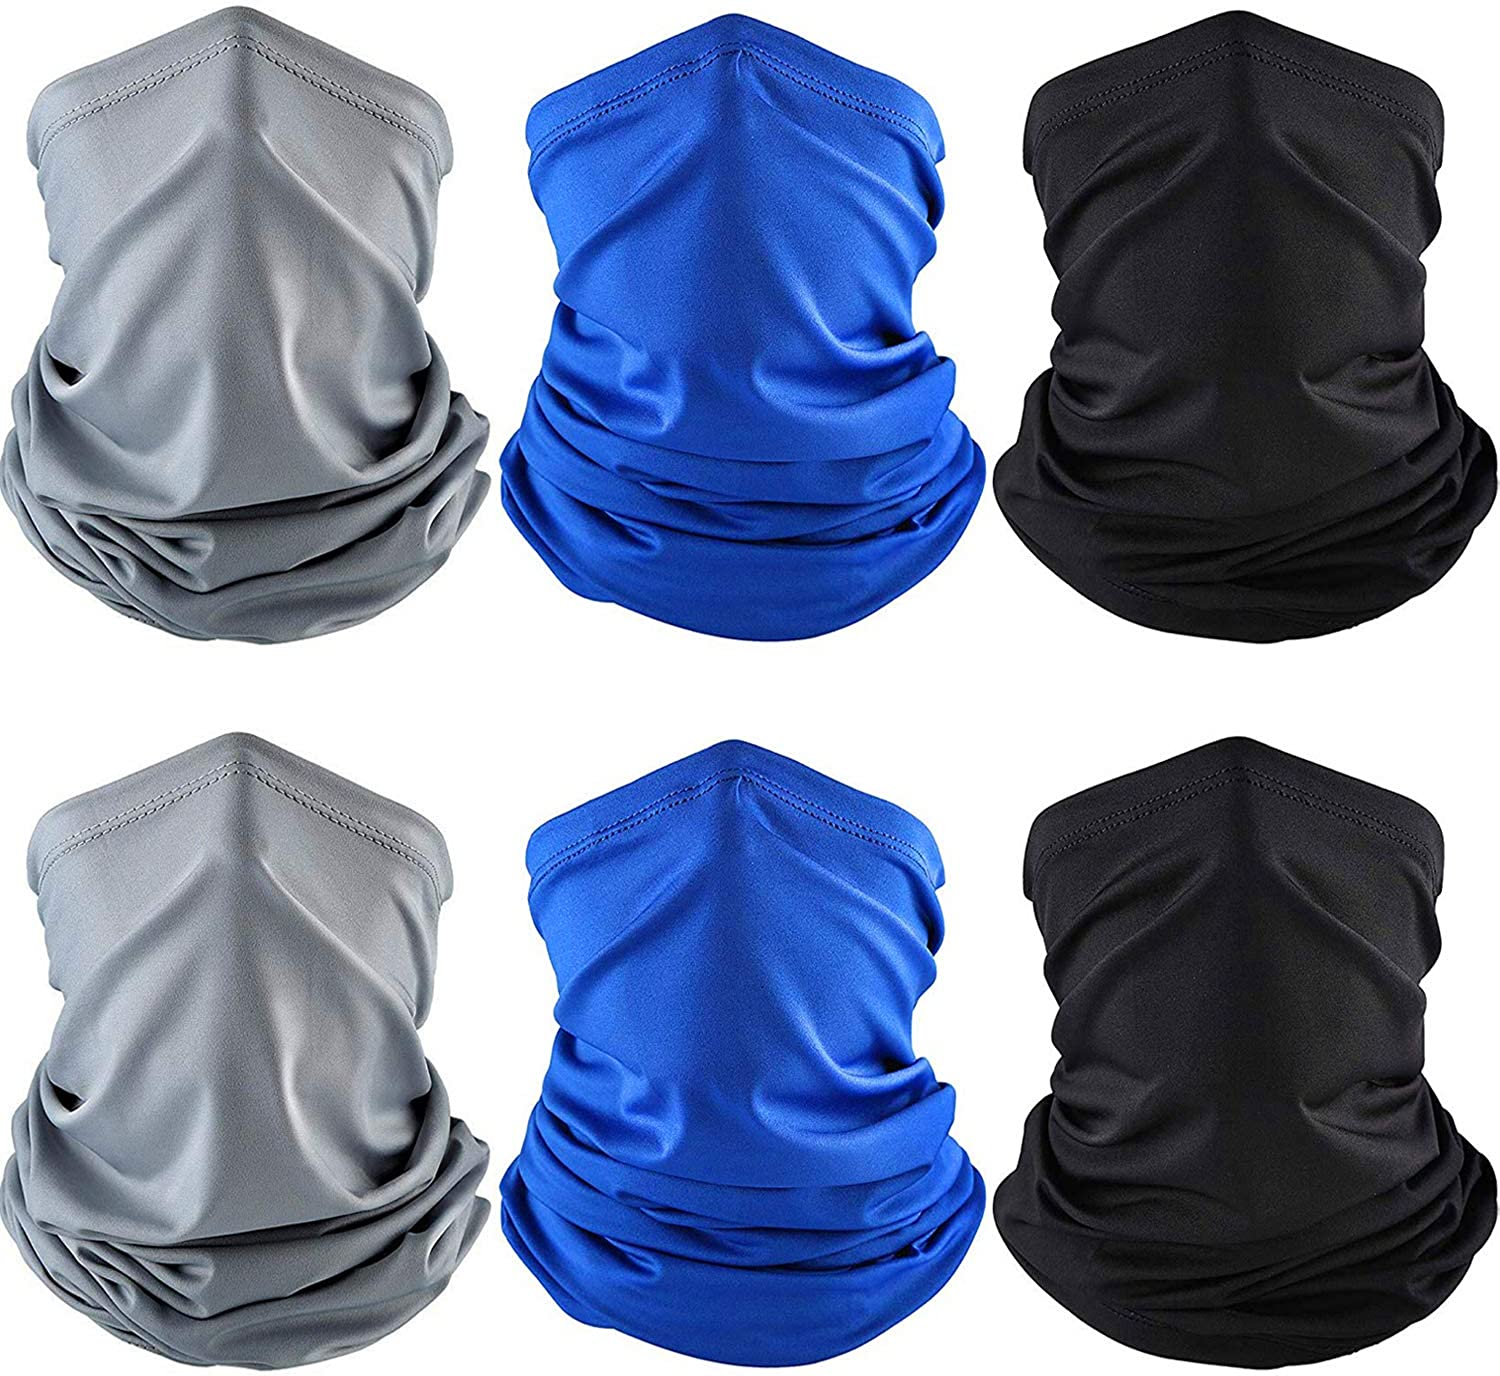 6 Pieces Summer UV Protection Face Clothing Neck Gaiter Scarf Sunscreen Breathable Bandana